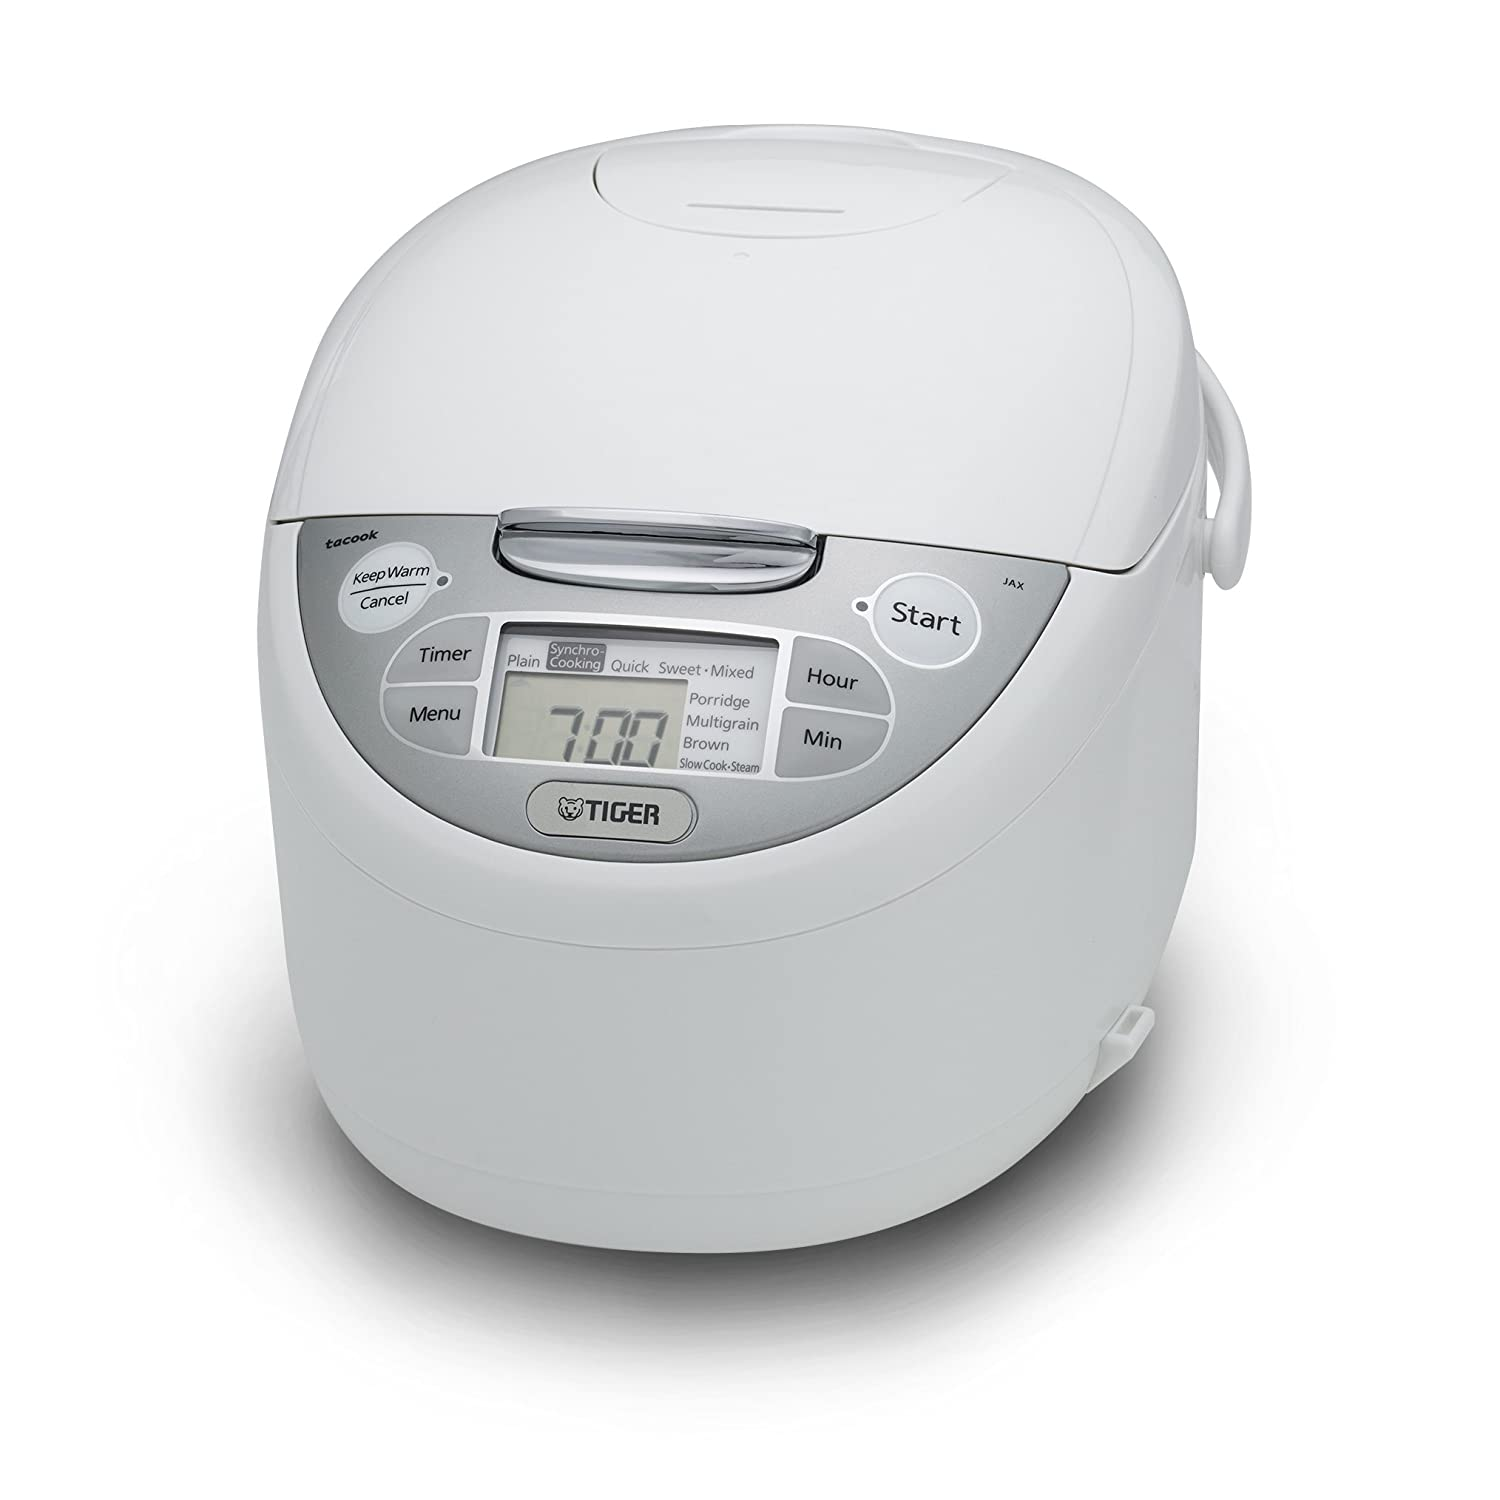 Tiger JAX-R10U-WY 5.5-Cup (Uncooked) Micom Rice Cooker & Warmer, Steamer, and Slow Cooker Tiger Corporation